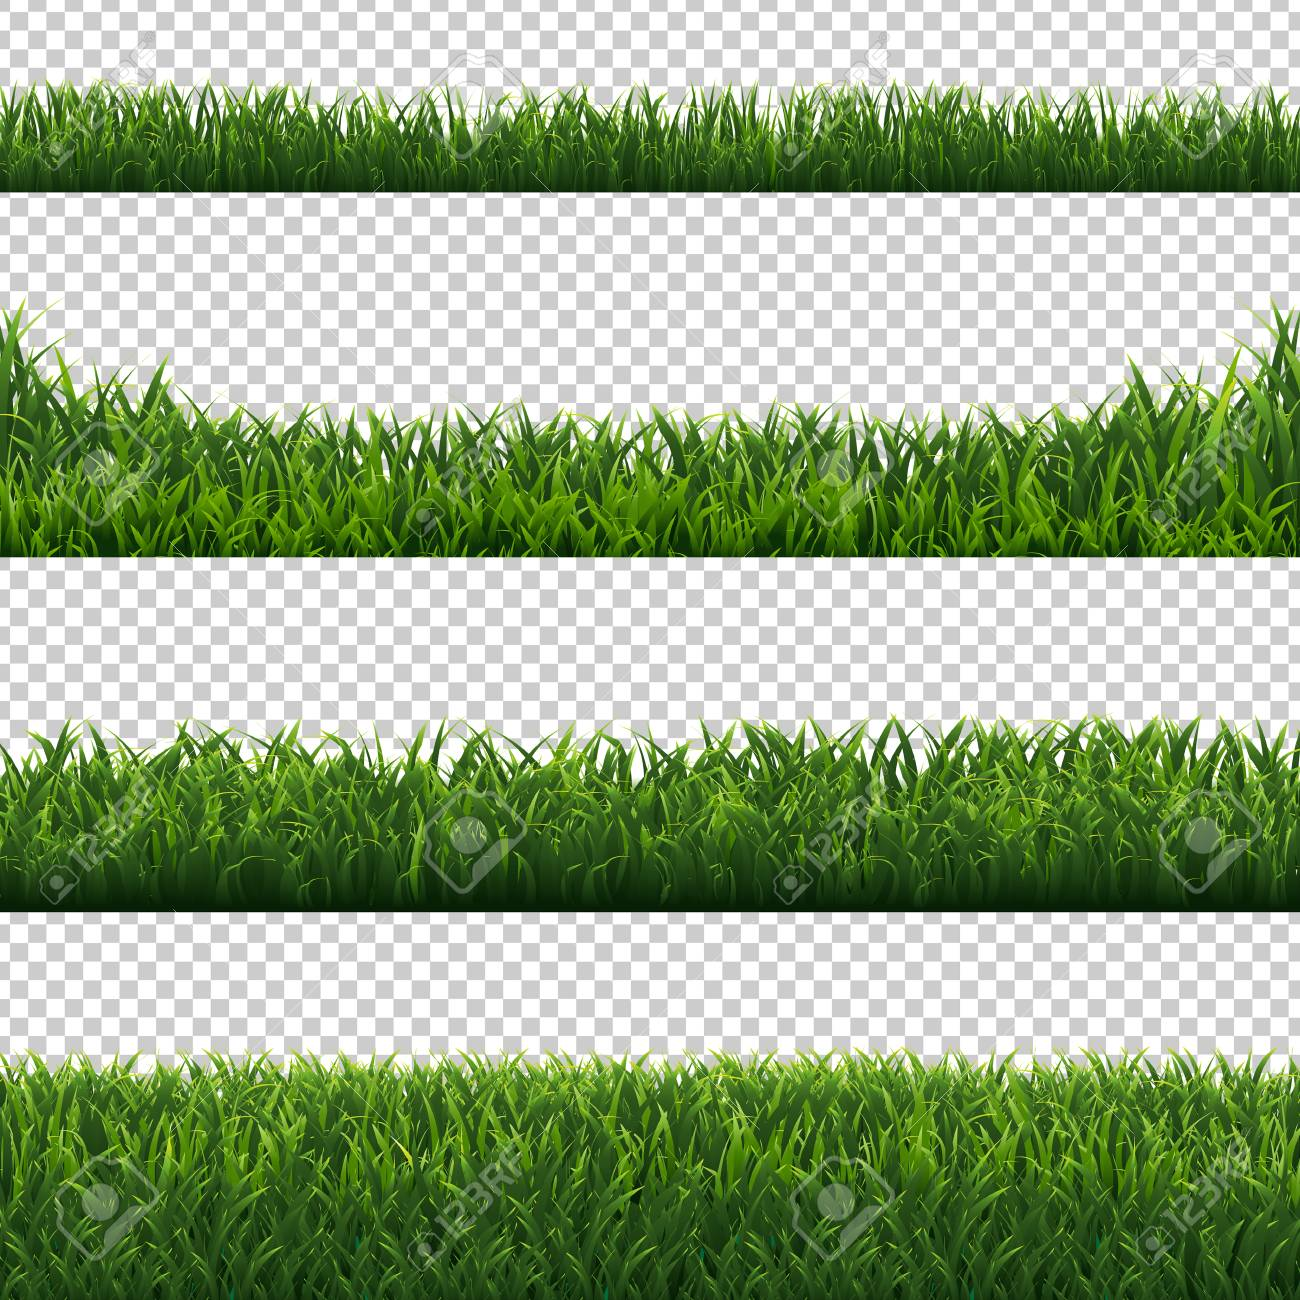 Green Grass Borders Set Transparent Background With Gradient Mesh, Vector Illustration - 125822613